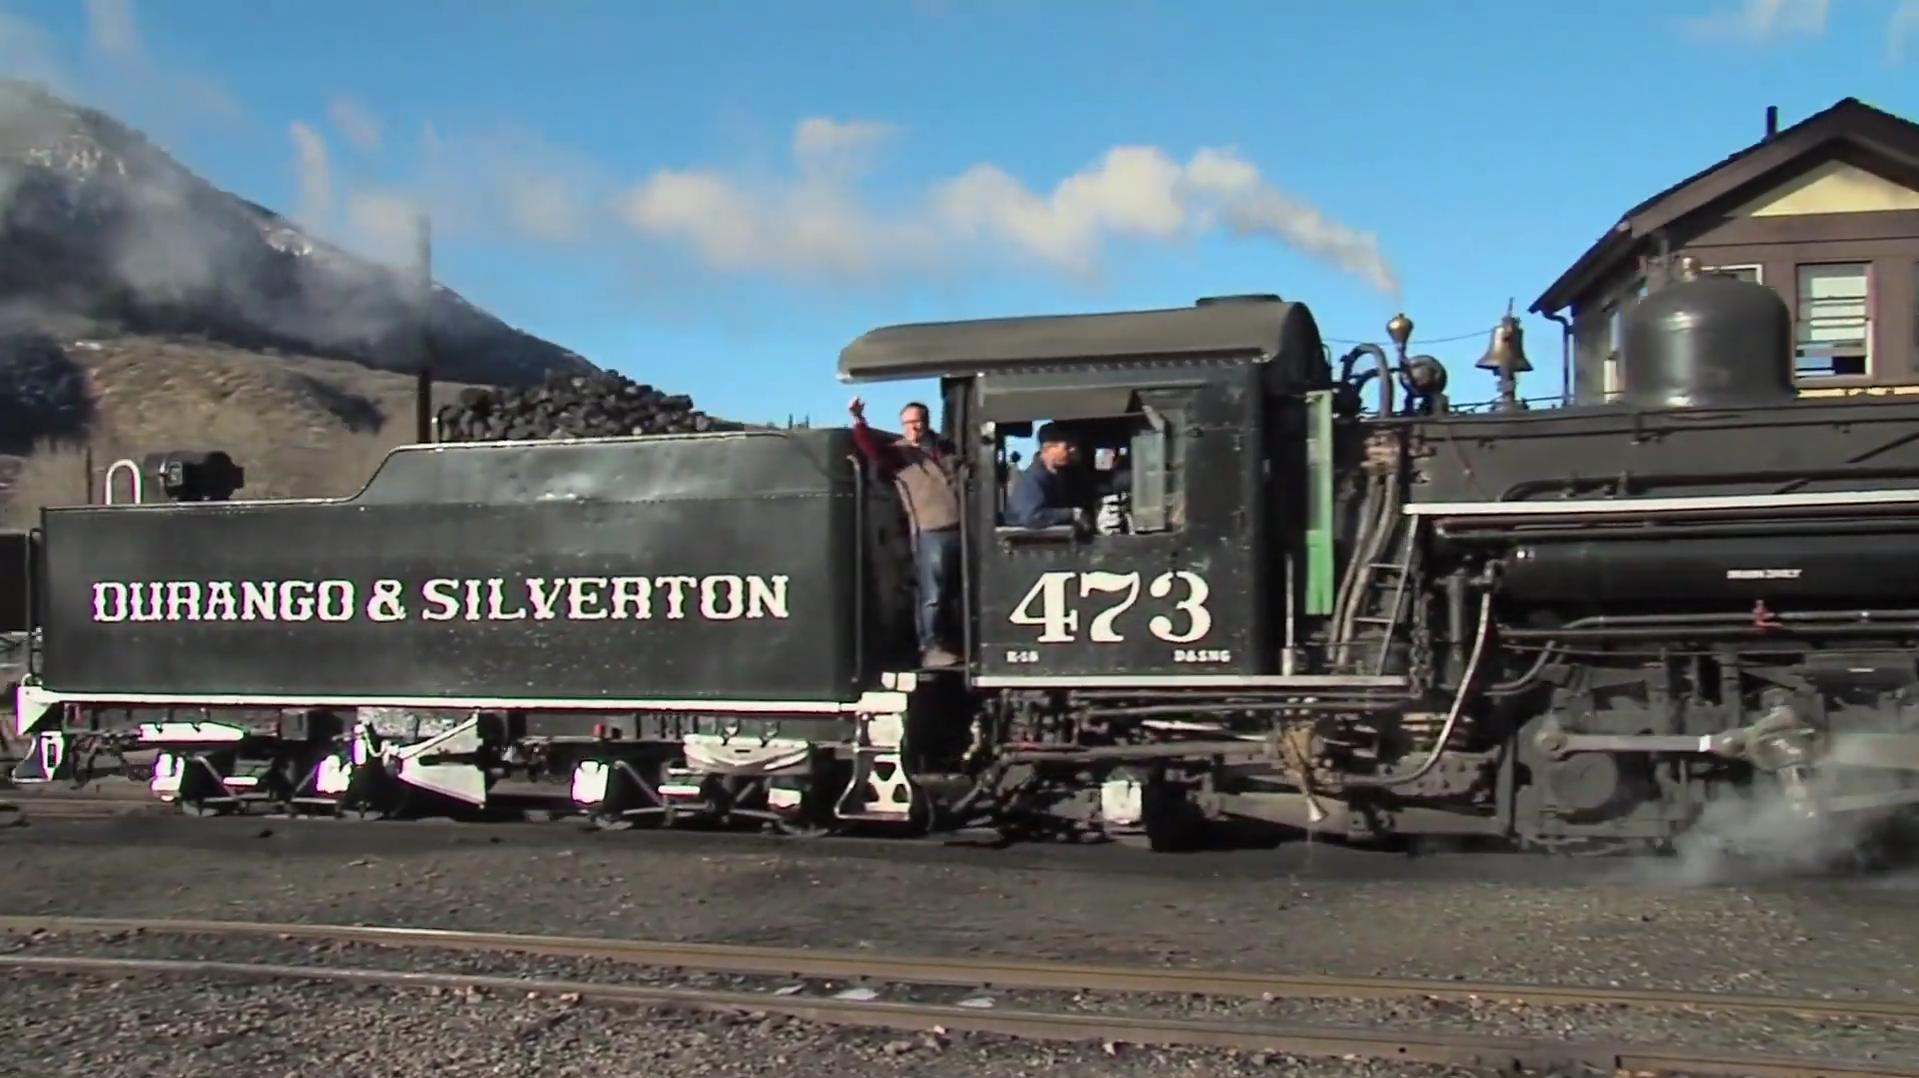 Durango Silverton Winter Train